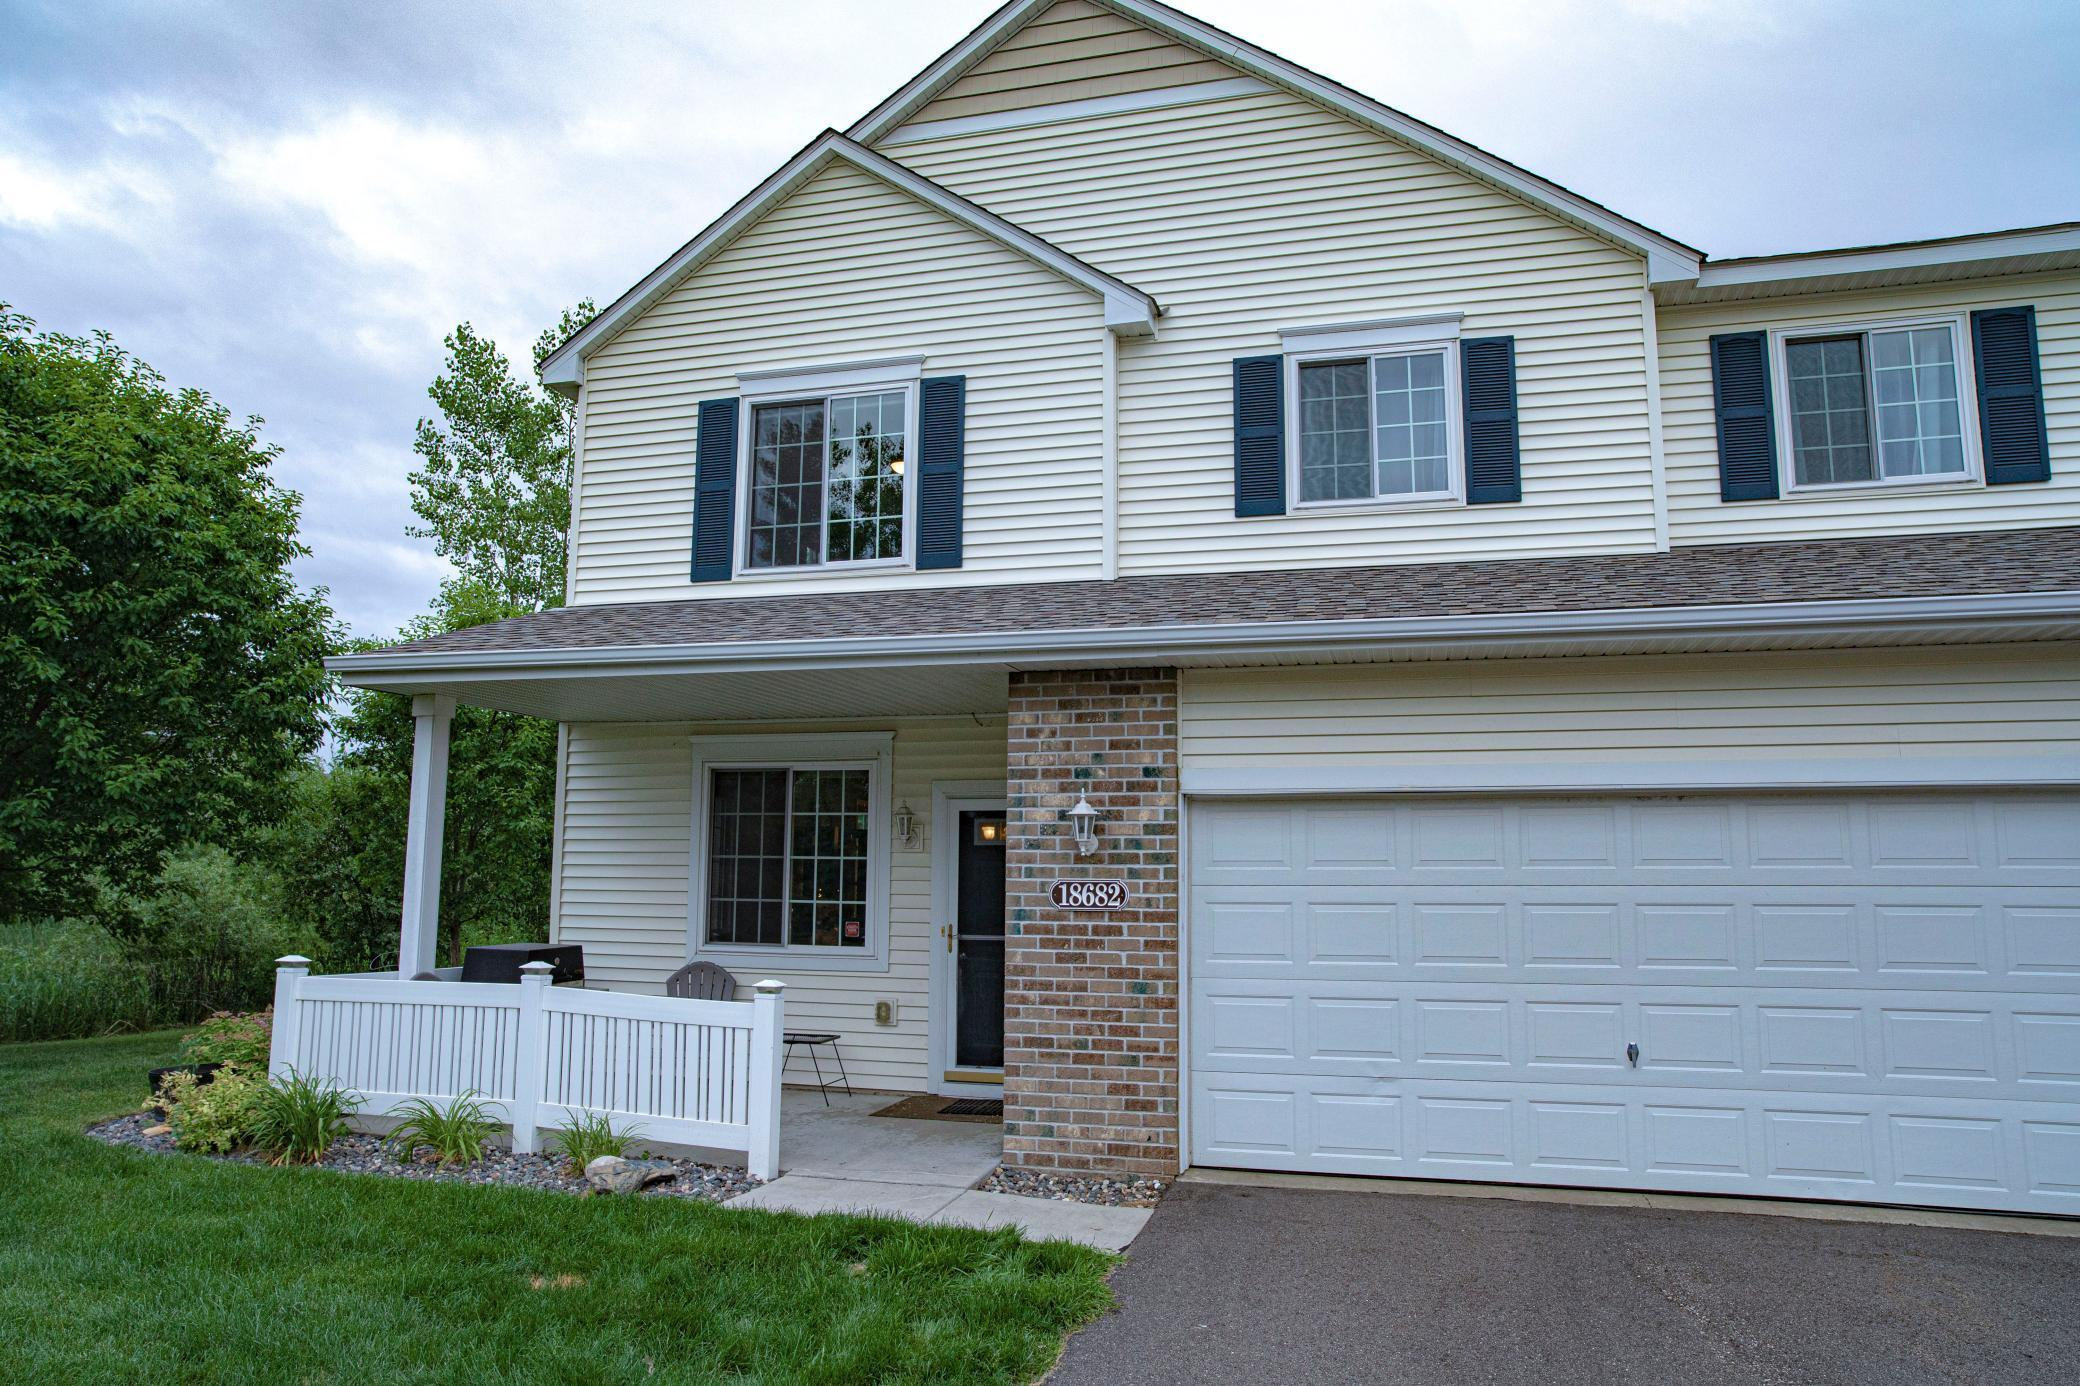 18682 97th N Property Photo - Maple Grove, MN real estate listing